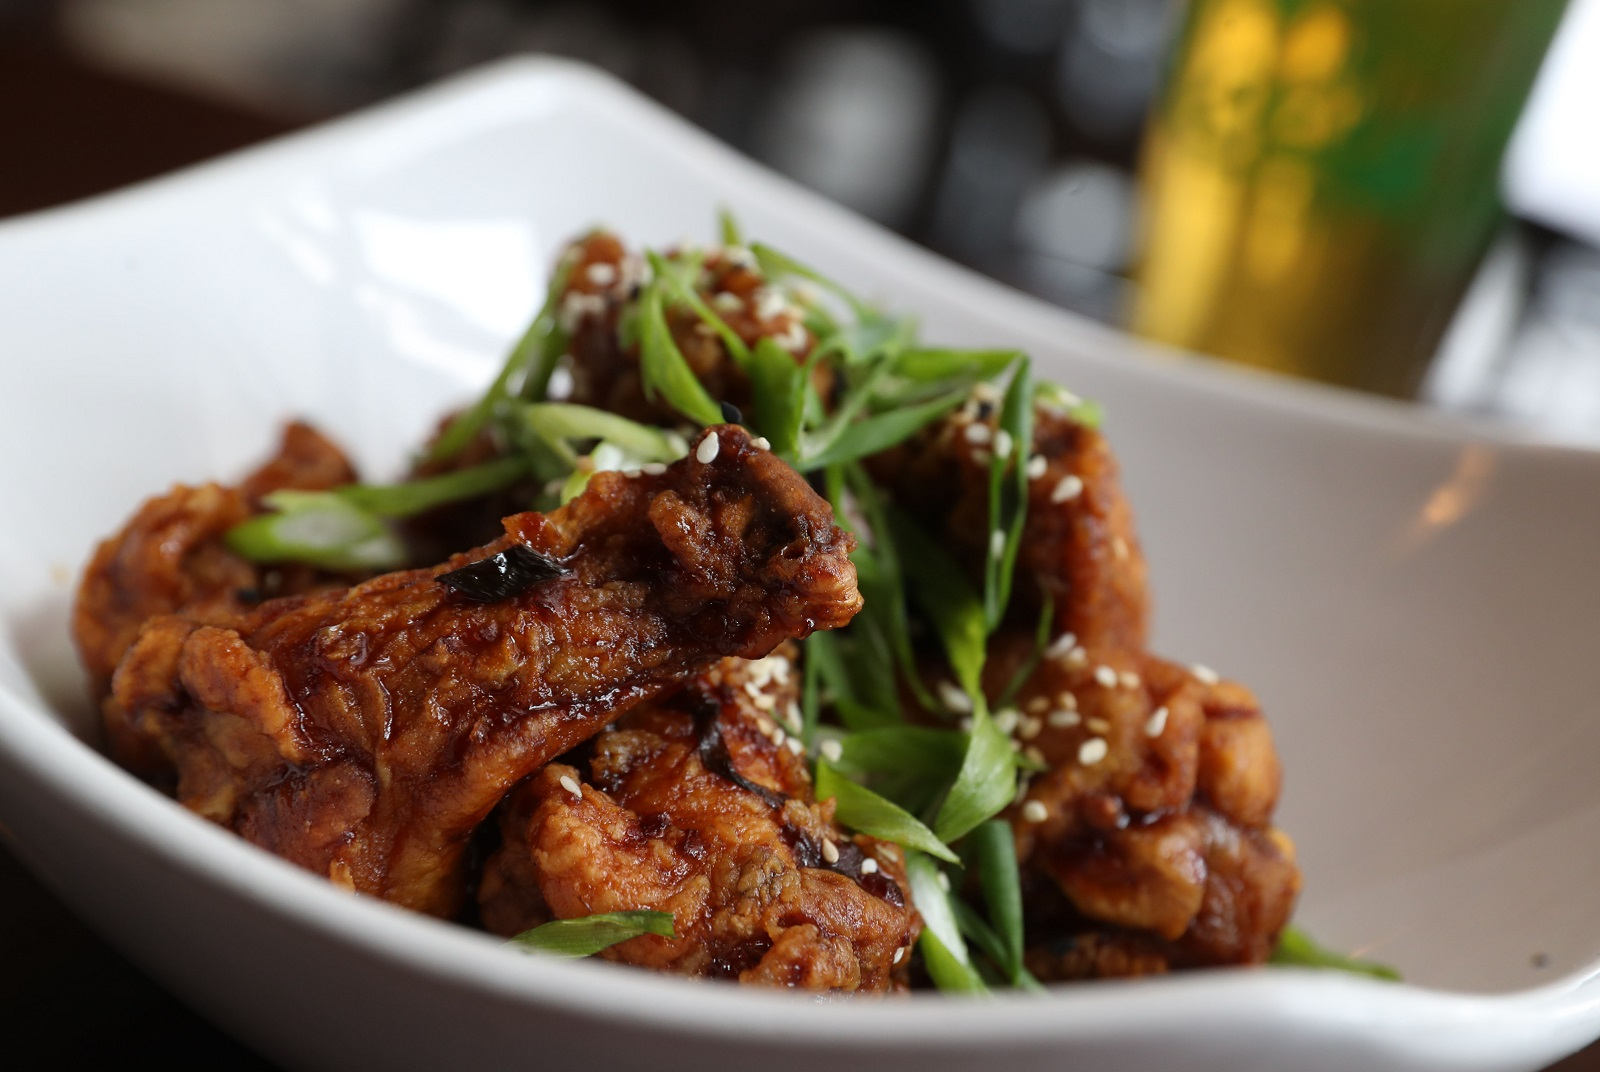 A new special dish at Coles is the sticky sweet soy chicken wings. Crispy  wings are covered in the house soy sauce and topped with scallions and  sesame ...